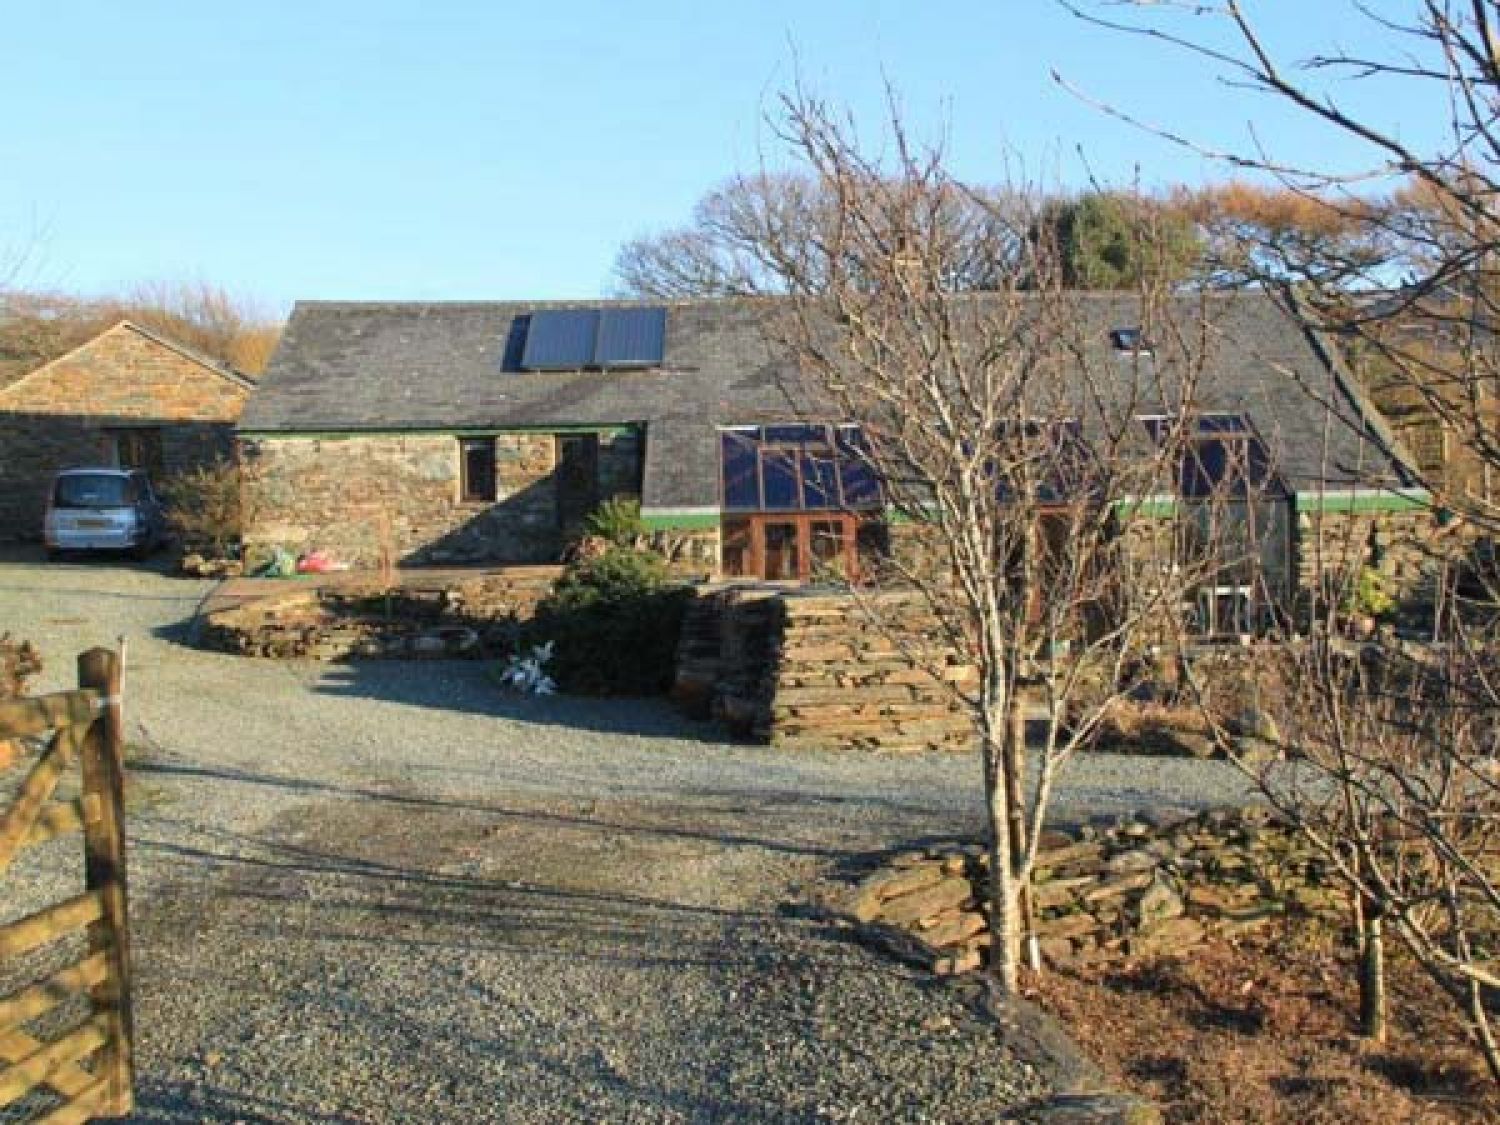 Cynefin Talsarnau Harlech Self Catering Holiday Cottage